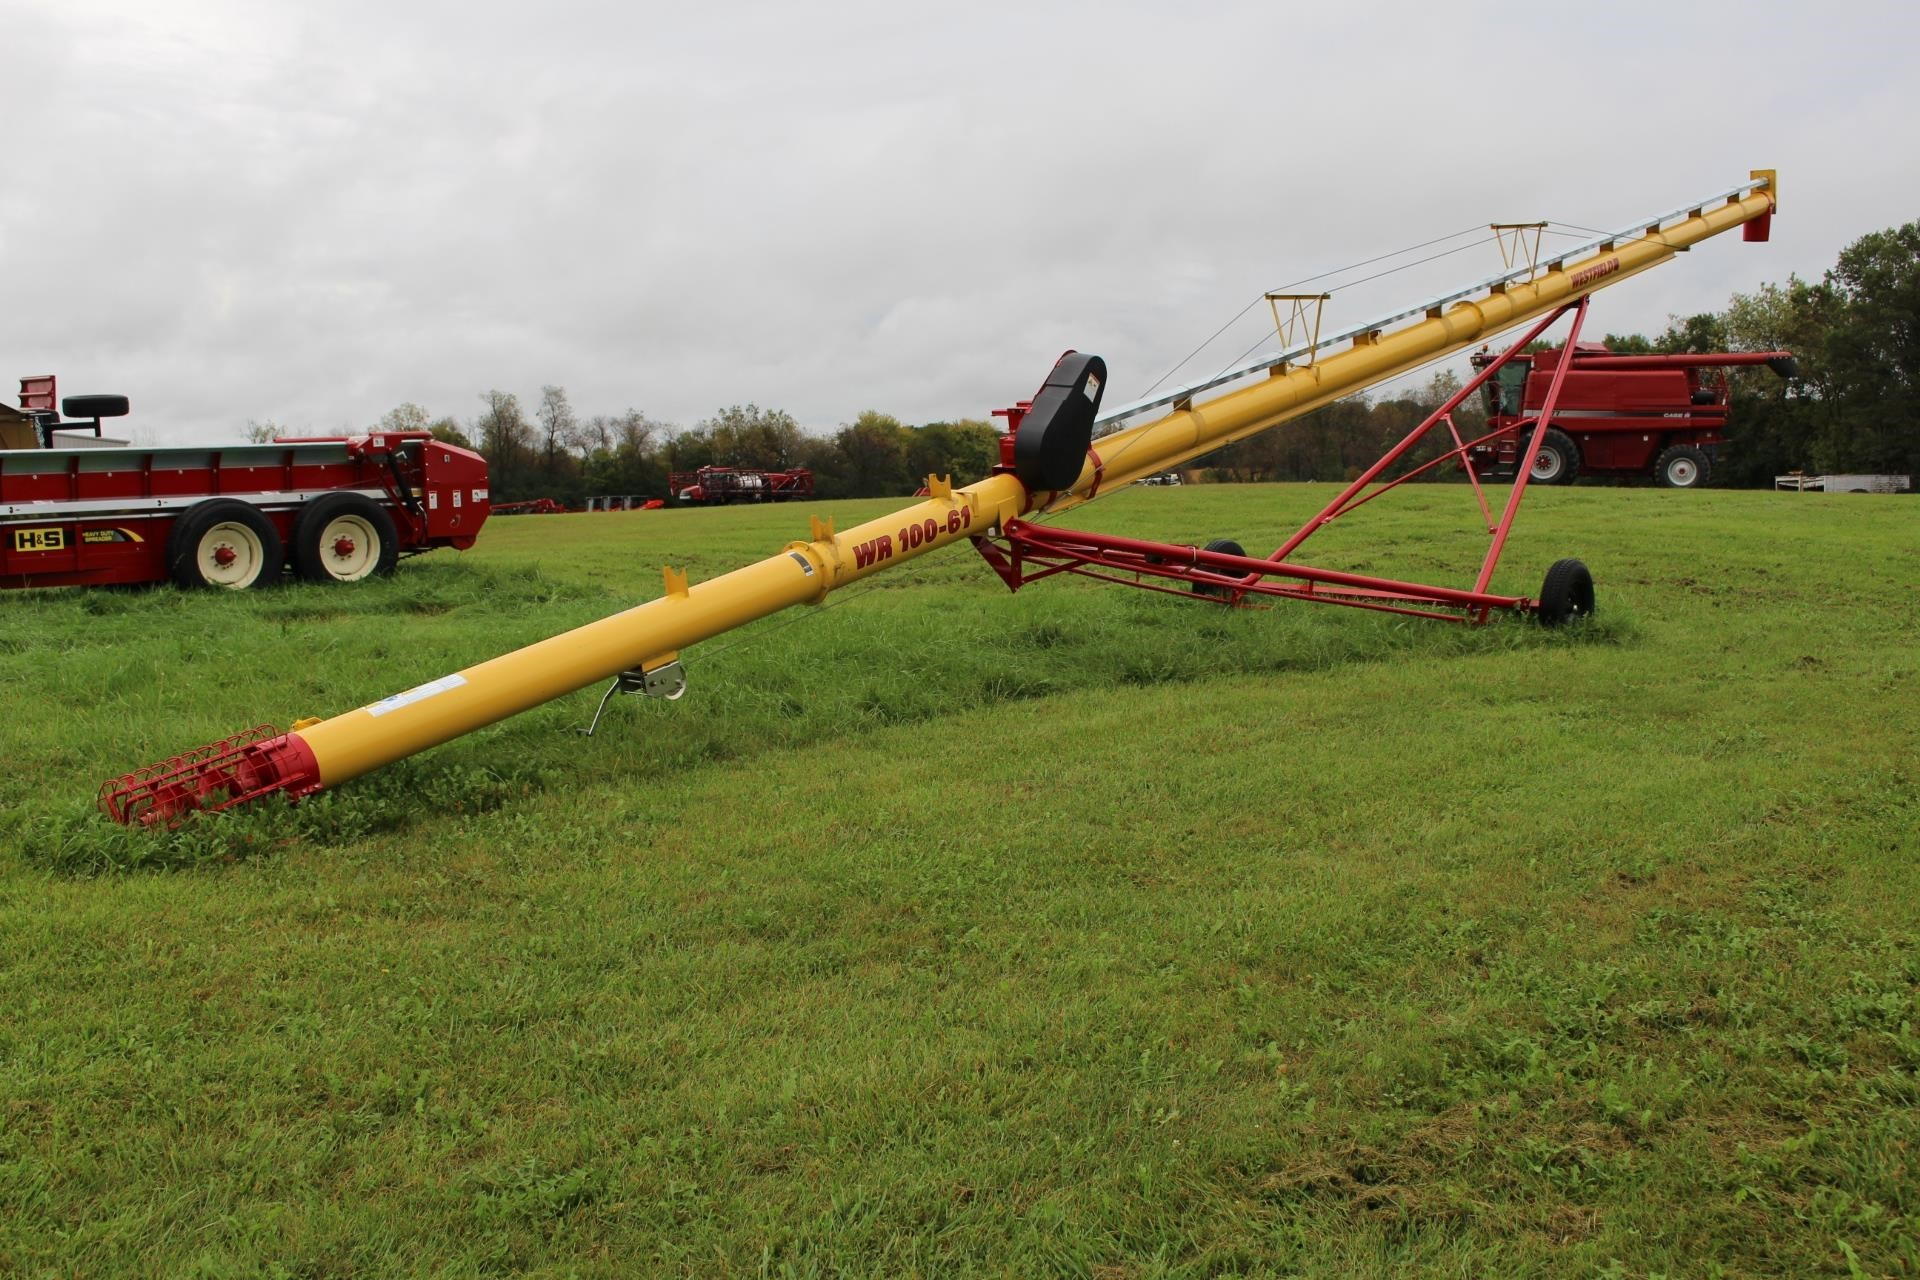 2018 Westfield WR100-61 Augers and Conveyor